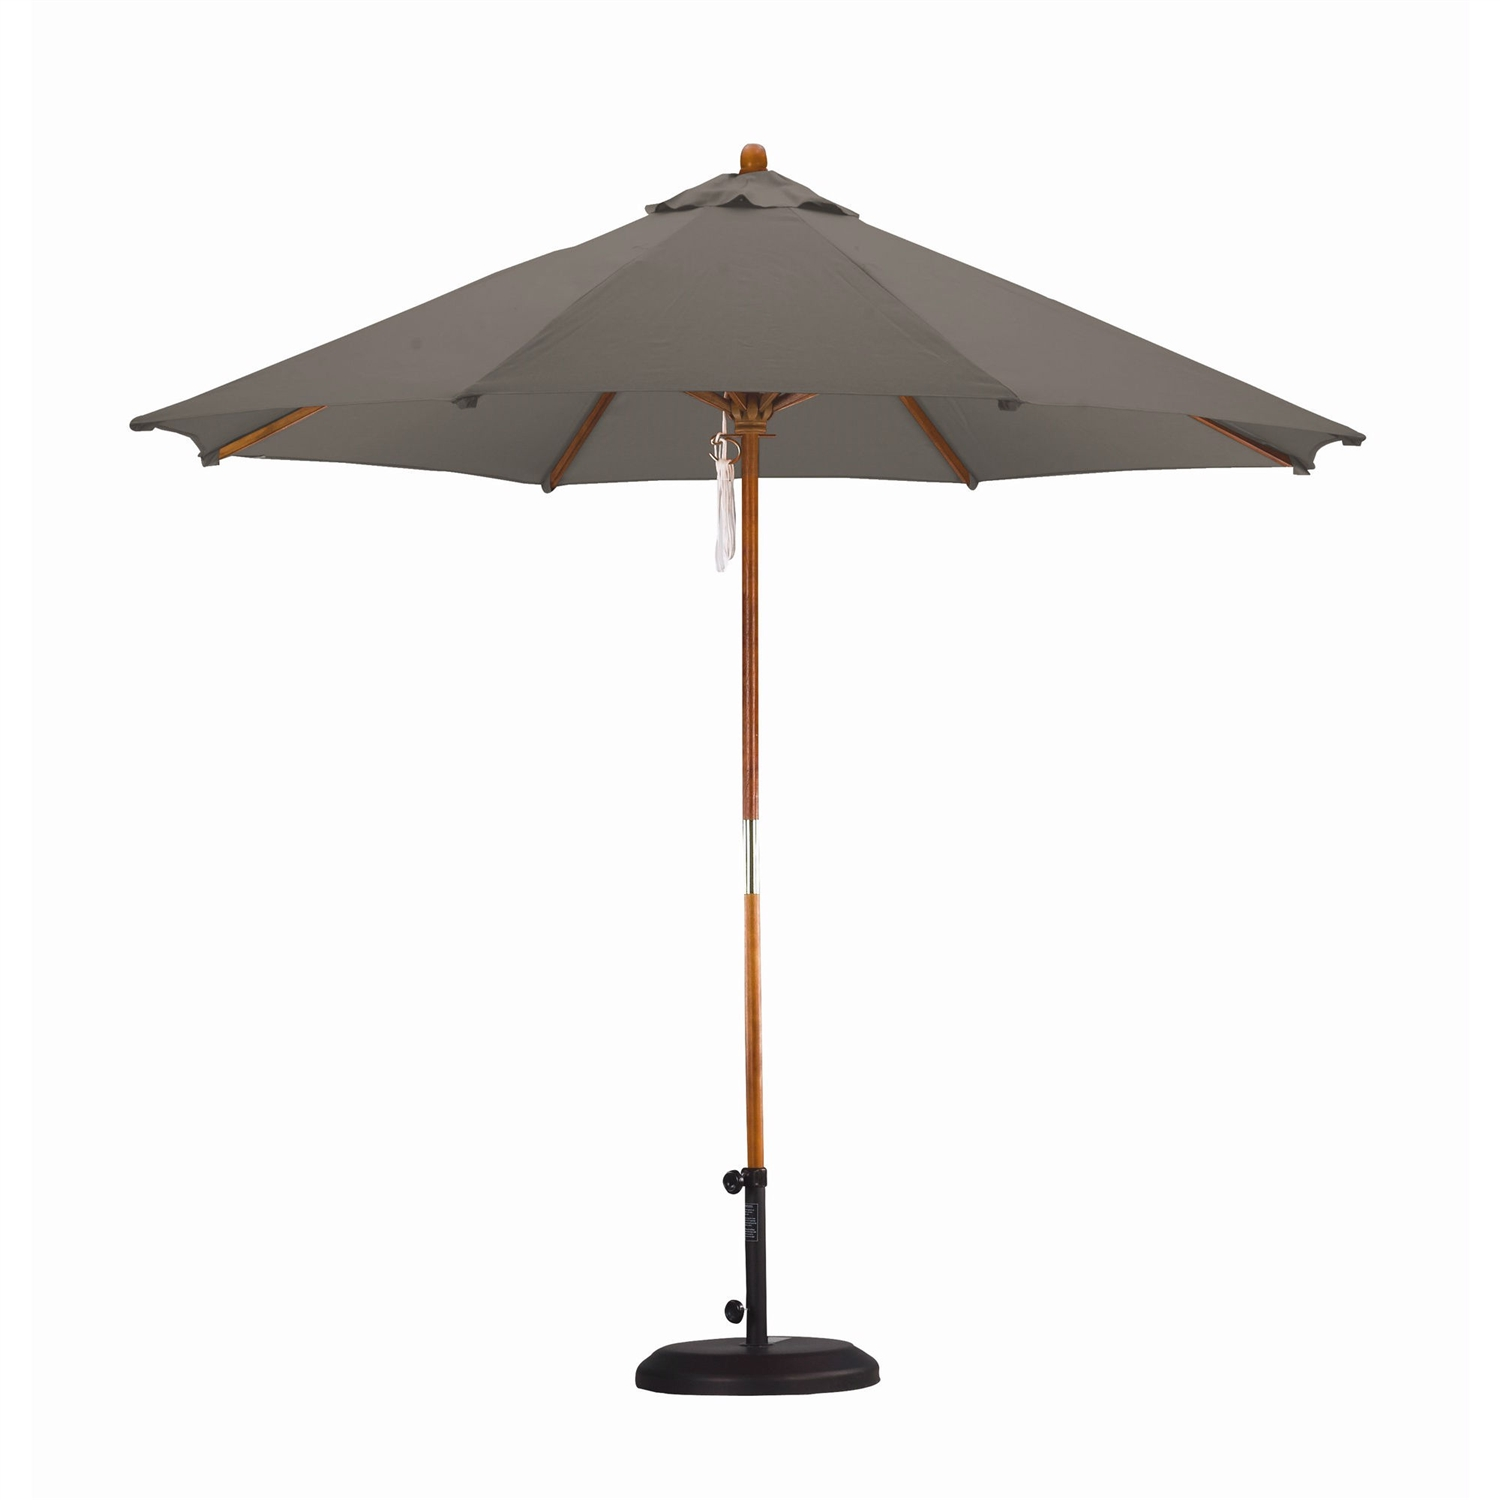 Taupe 9-FT Outdoor Market Umbrella with Taupe Color Canopy, TIUH56841 :  This Taupe 9-FT Outdoor Market Umbrella with Taupe Color Canopy would be a great addition to your home. It has a classic design with all wood and an aluminum frame.